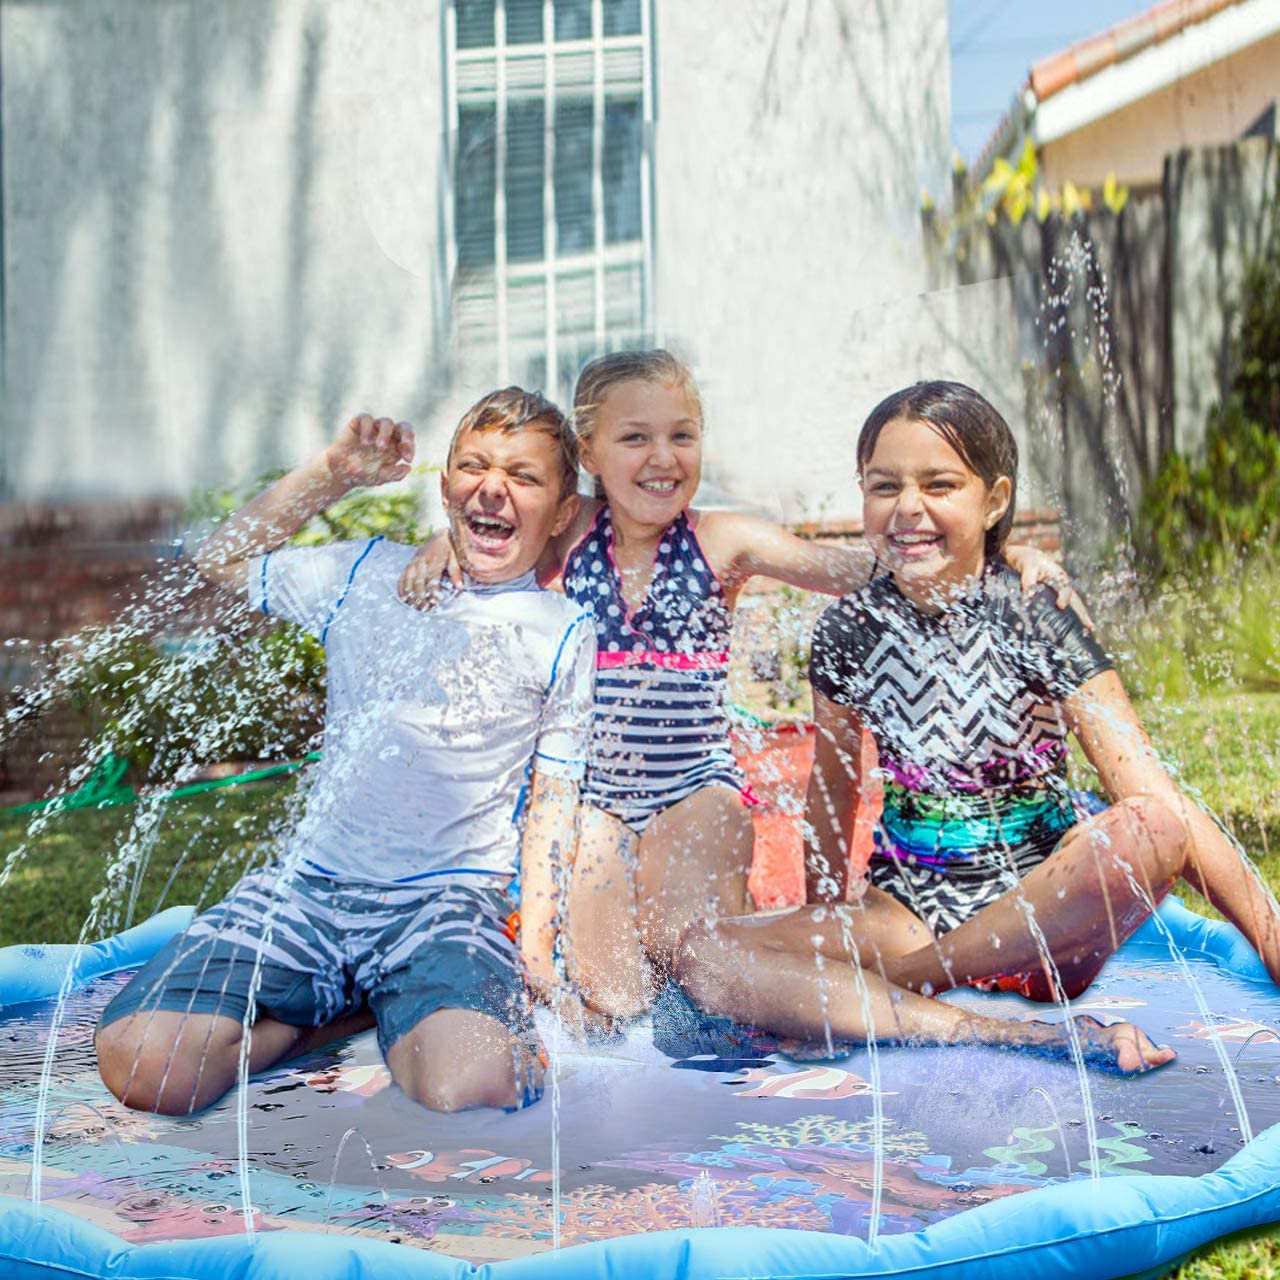 joylink Sprinkle and Splash Play Mat 67.72 Inches Splash pad Water Play Mat Summer Essential Spray Toys for Kids Summer Outdoor Garden Water Play Blue